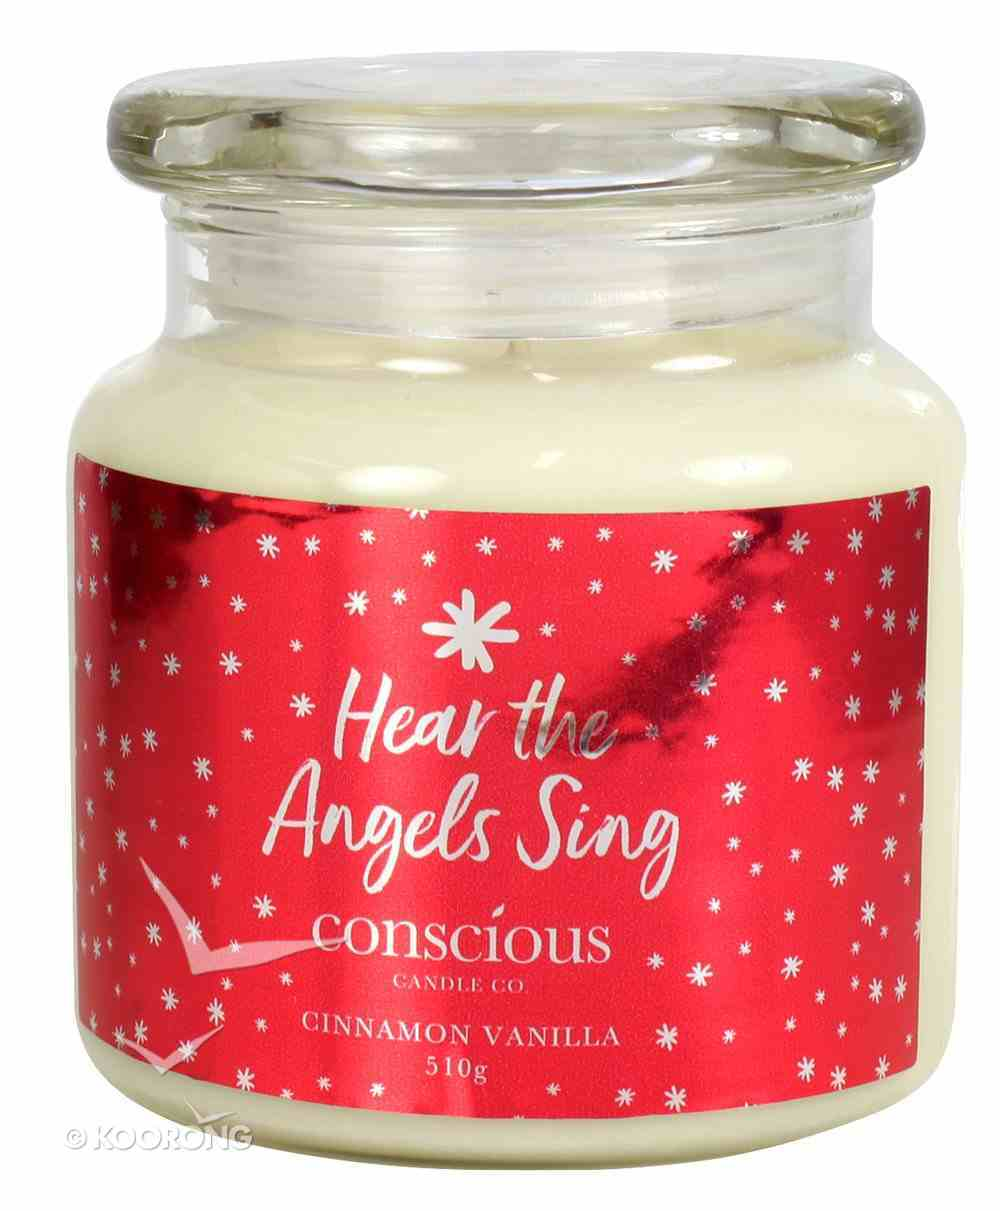 Quality Soy Christmas Candle: Hear the Angels Sing, Cinnamon Vanilla Homeware